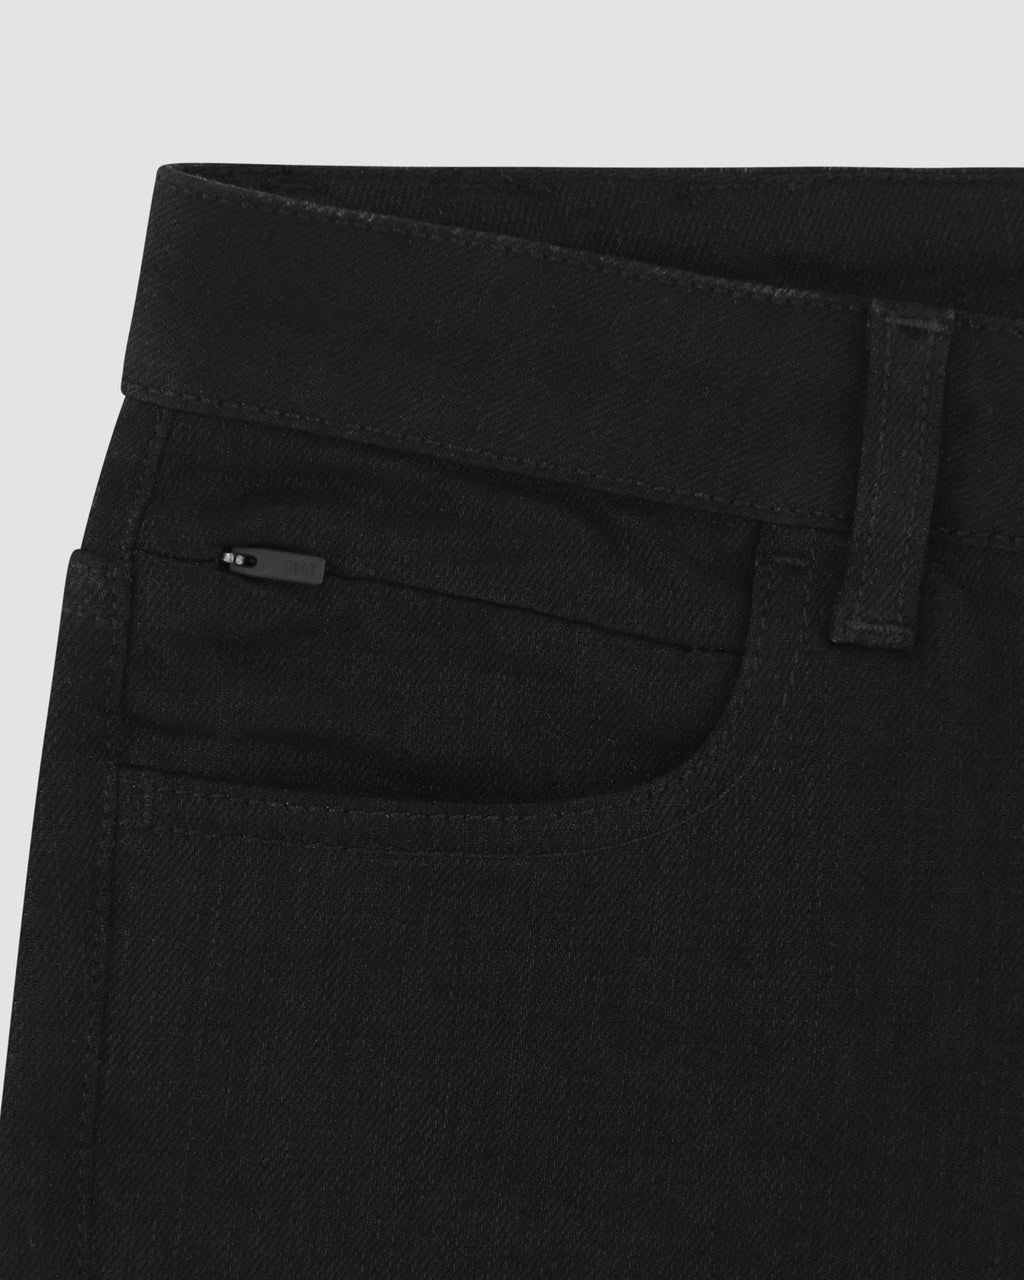 TRUE BLACK 6 POCKET JEAN WITH A RING